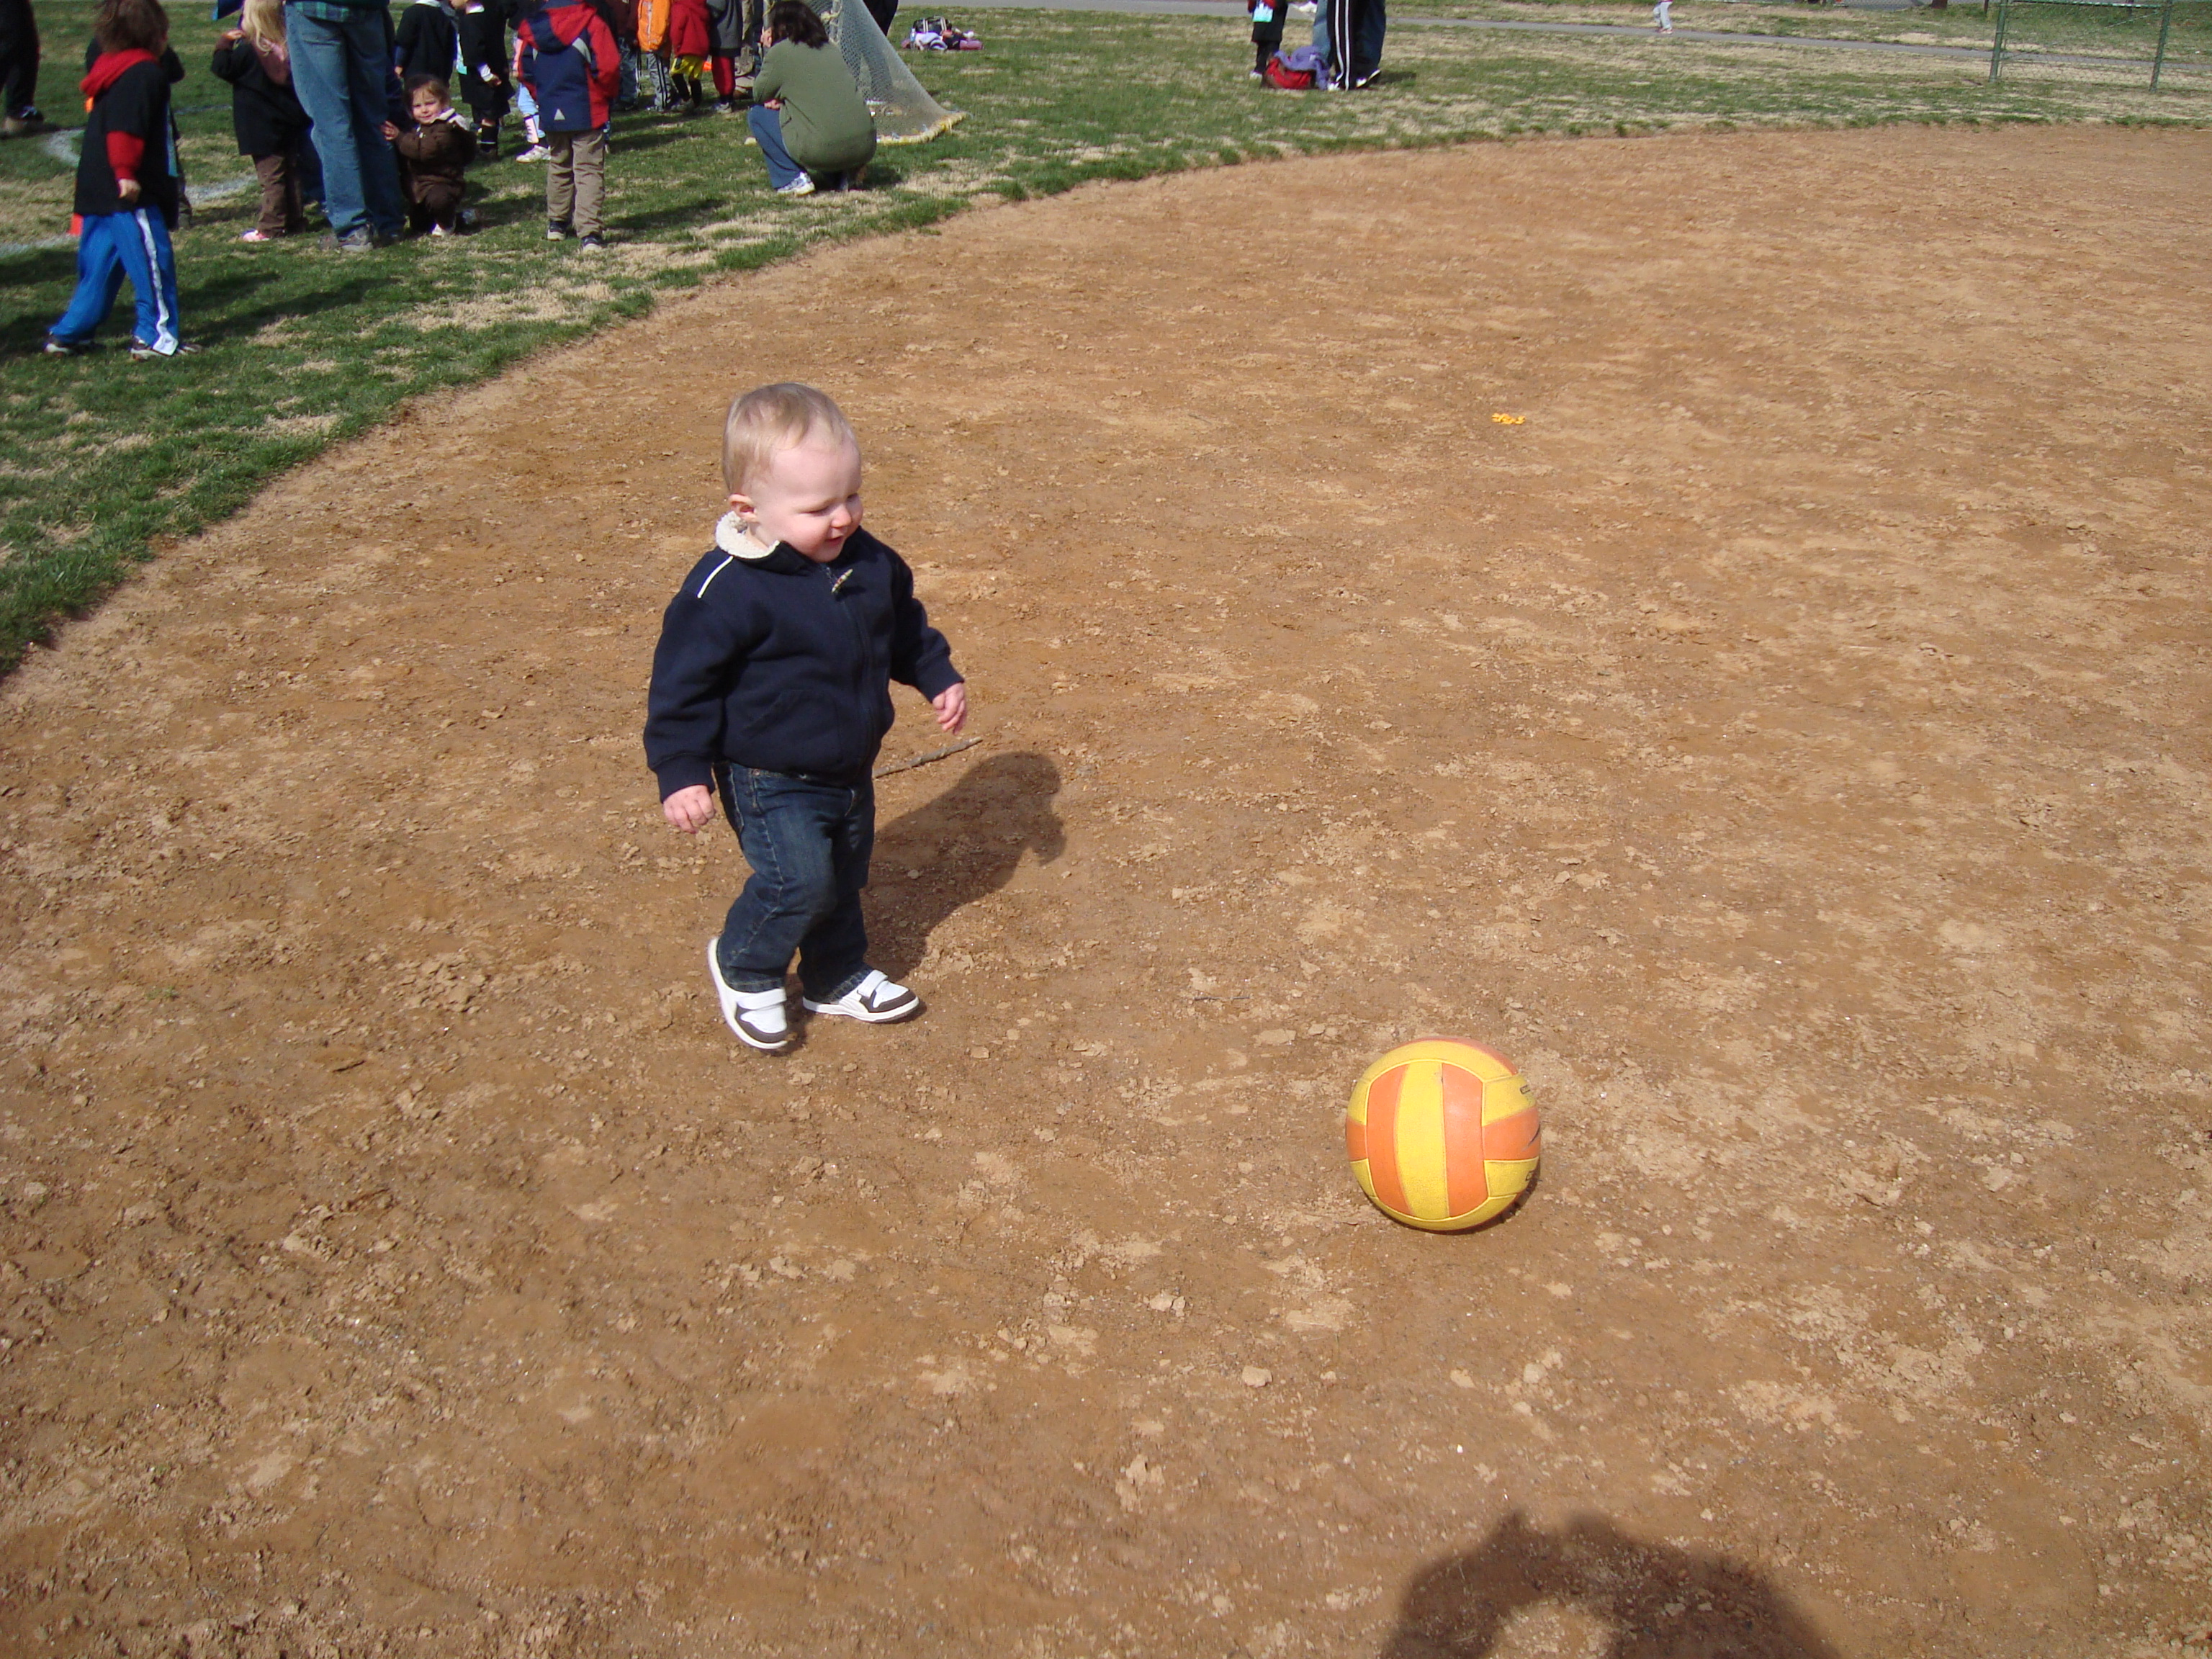 Cooper got into the soccer action too.